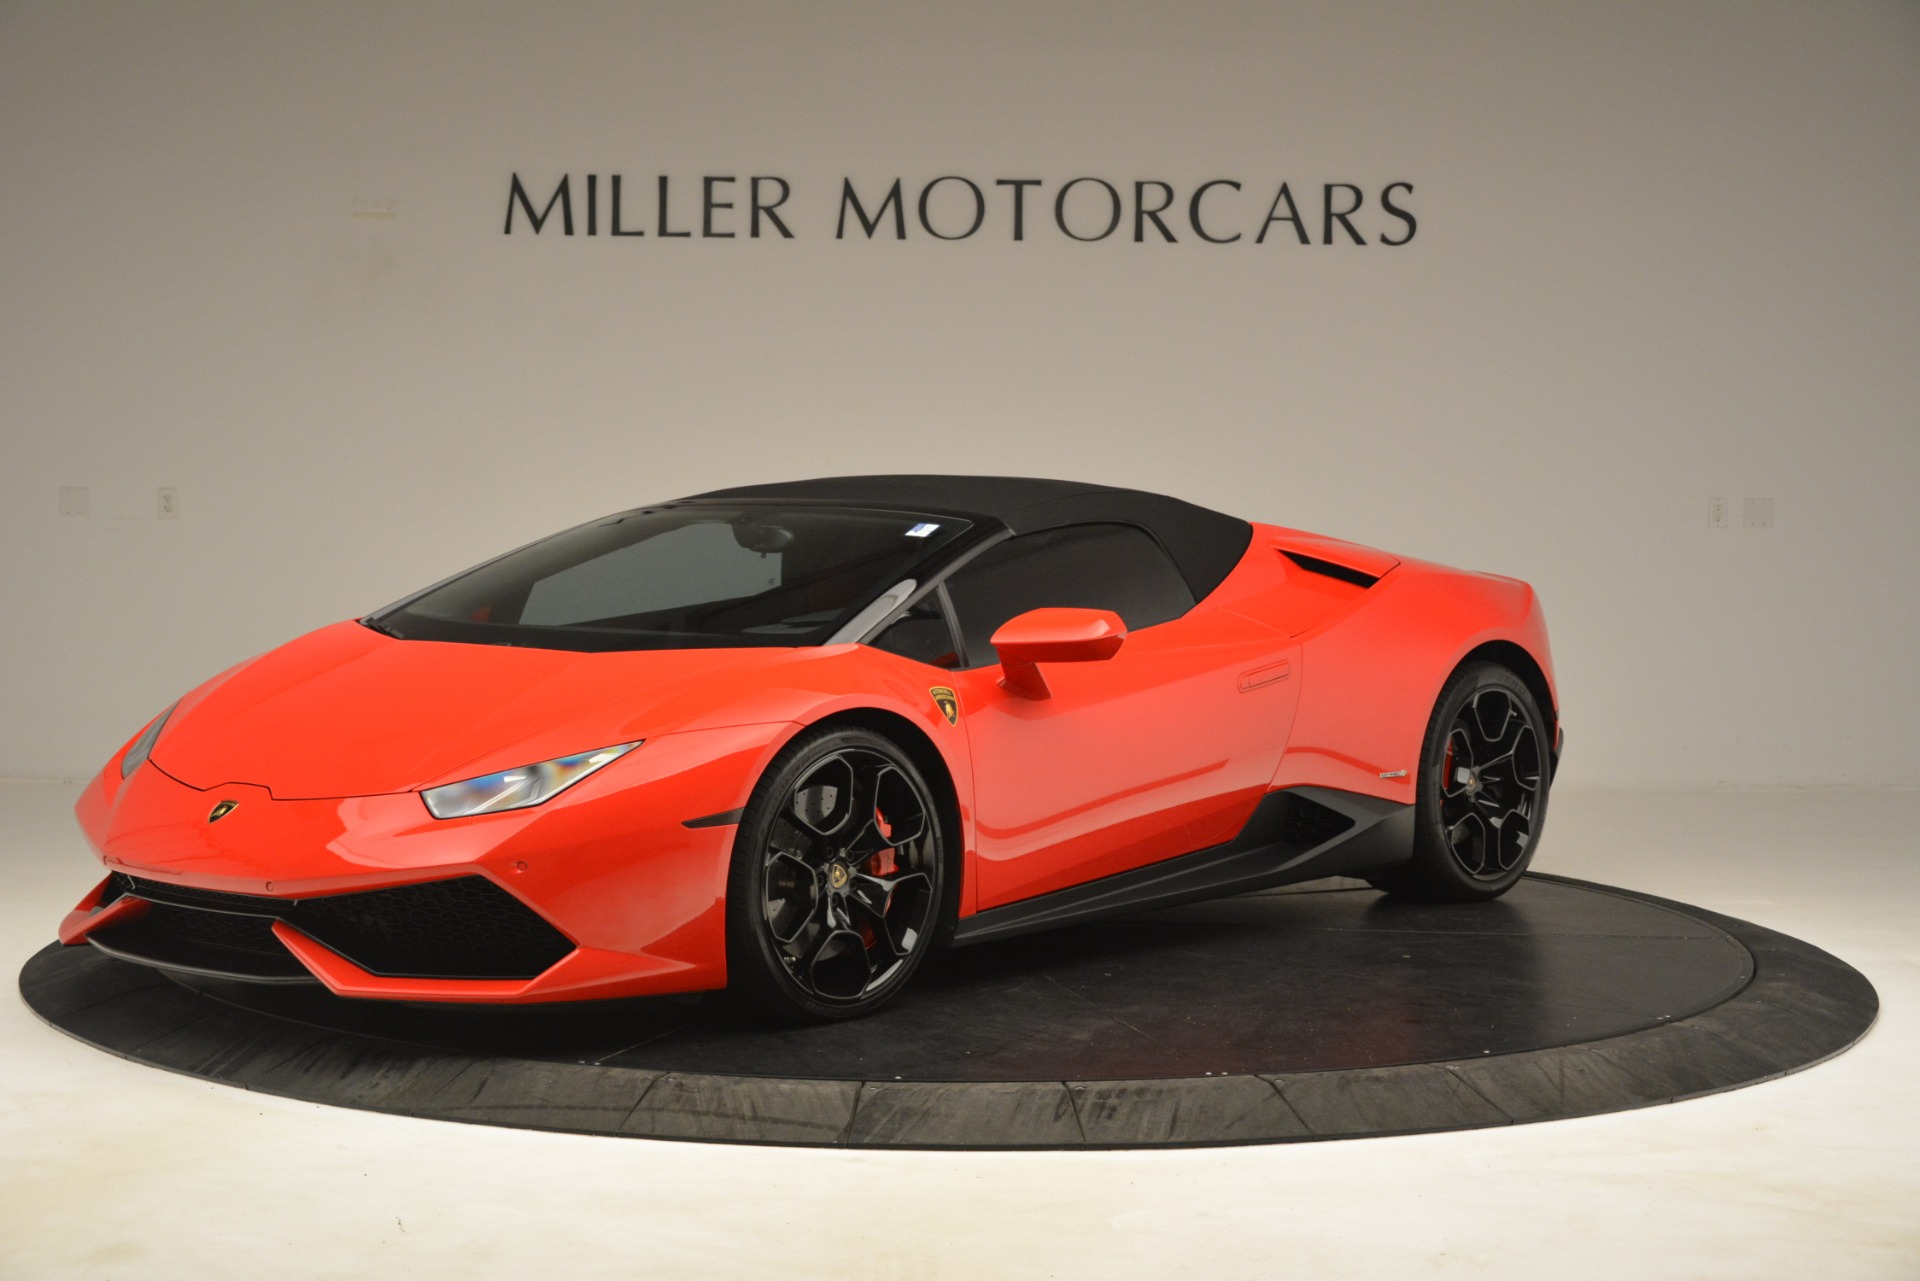 Used 2017 Lamborghini Huracan LP 610-4 Spyder For Sale In Greenwich, CT. Alfa Romeo of Greenwich, 7597 3270_p10